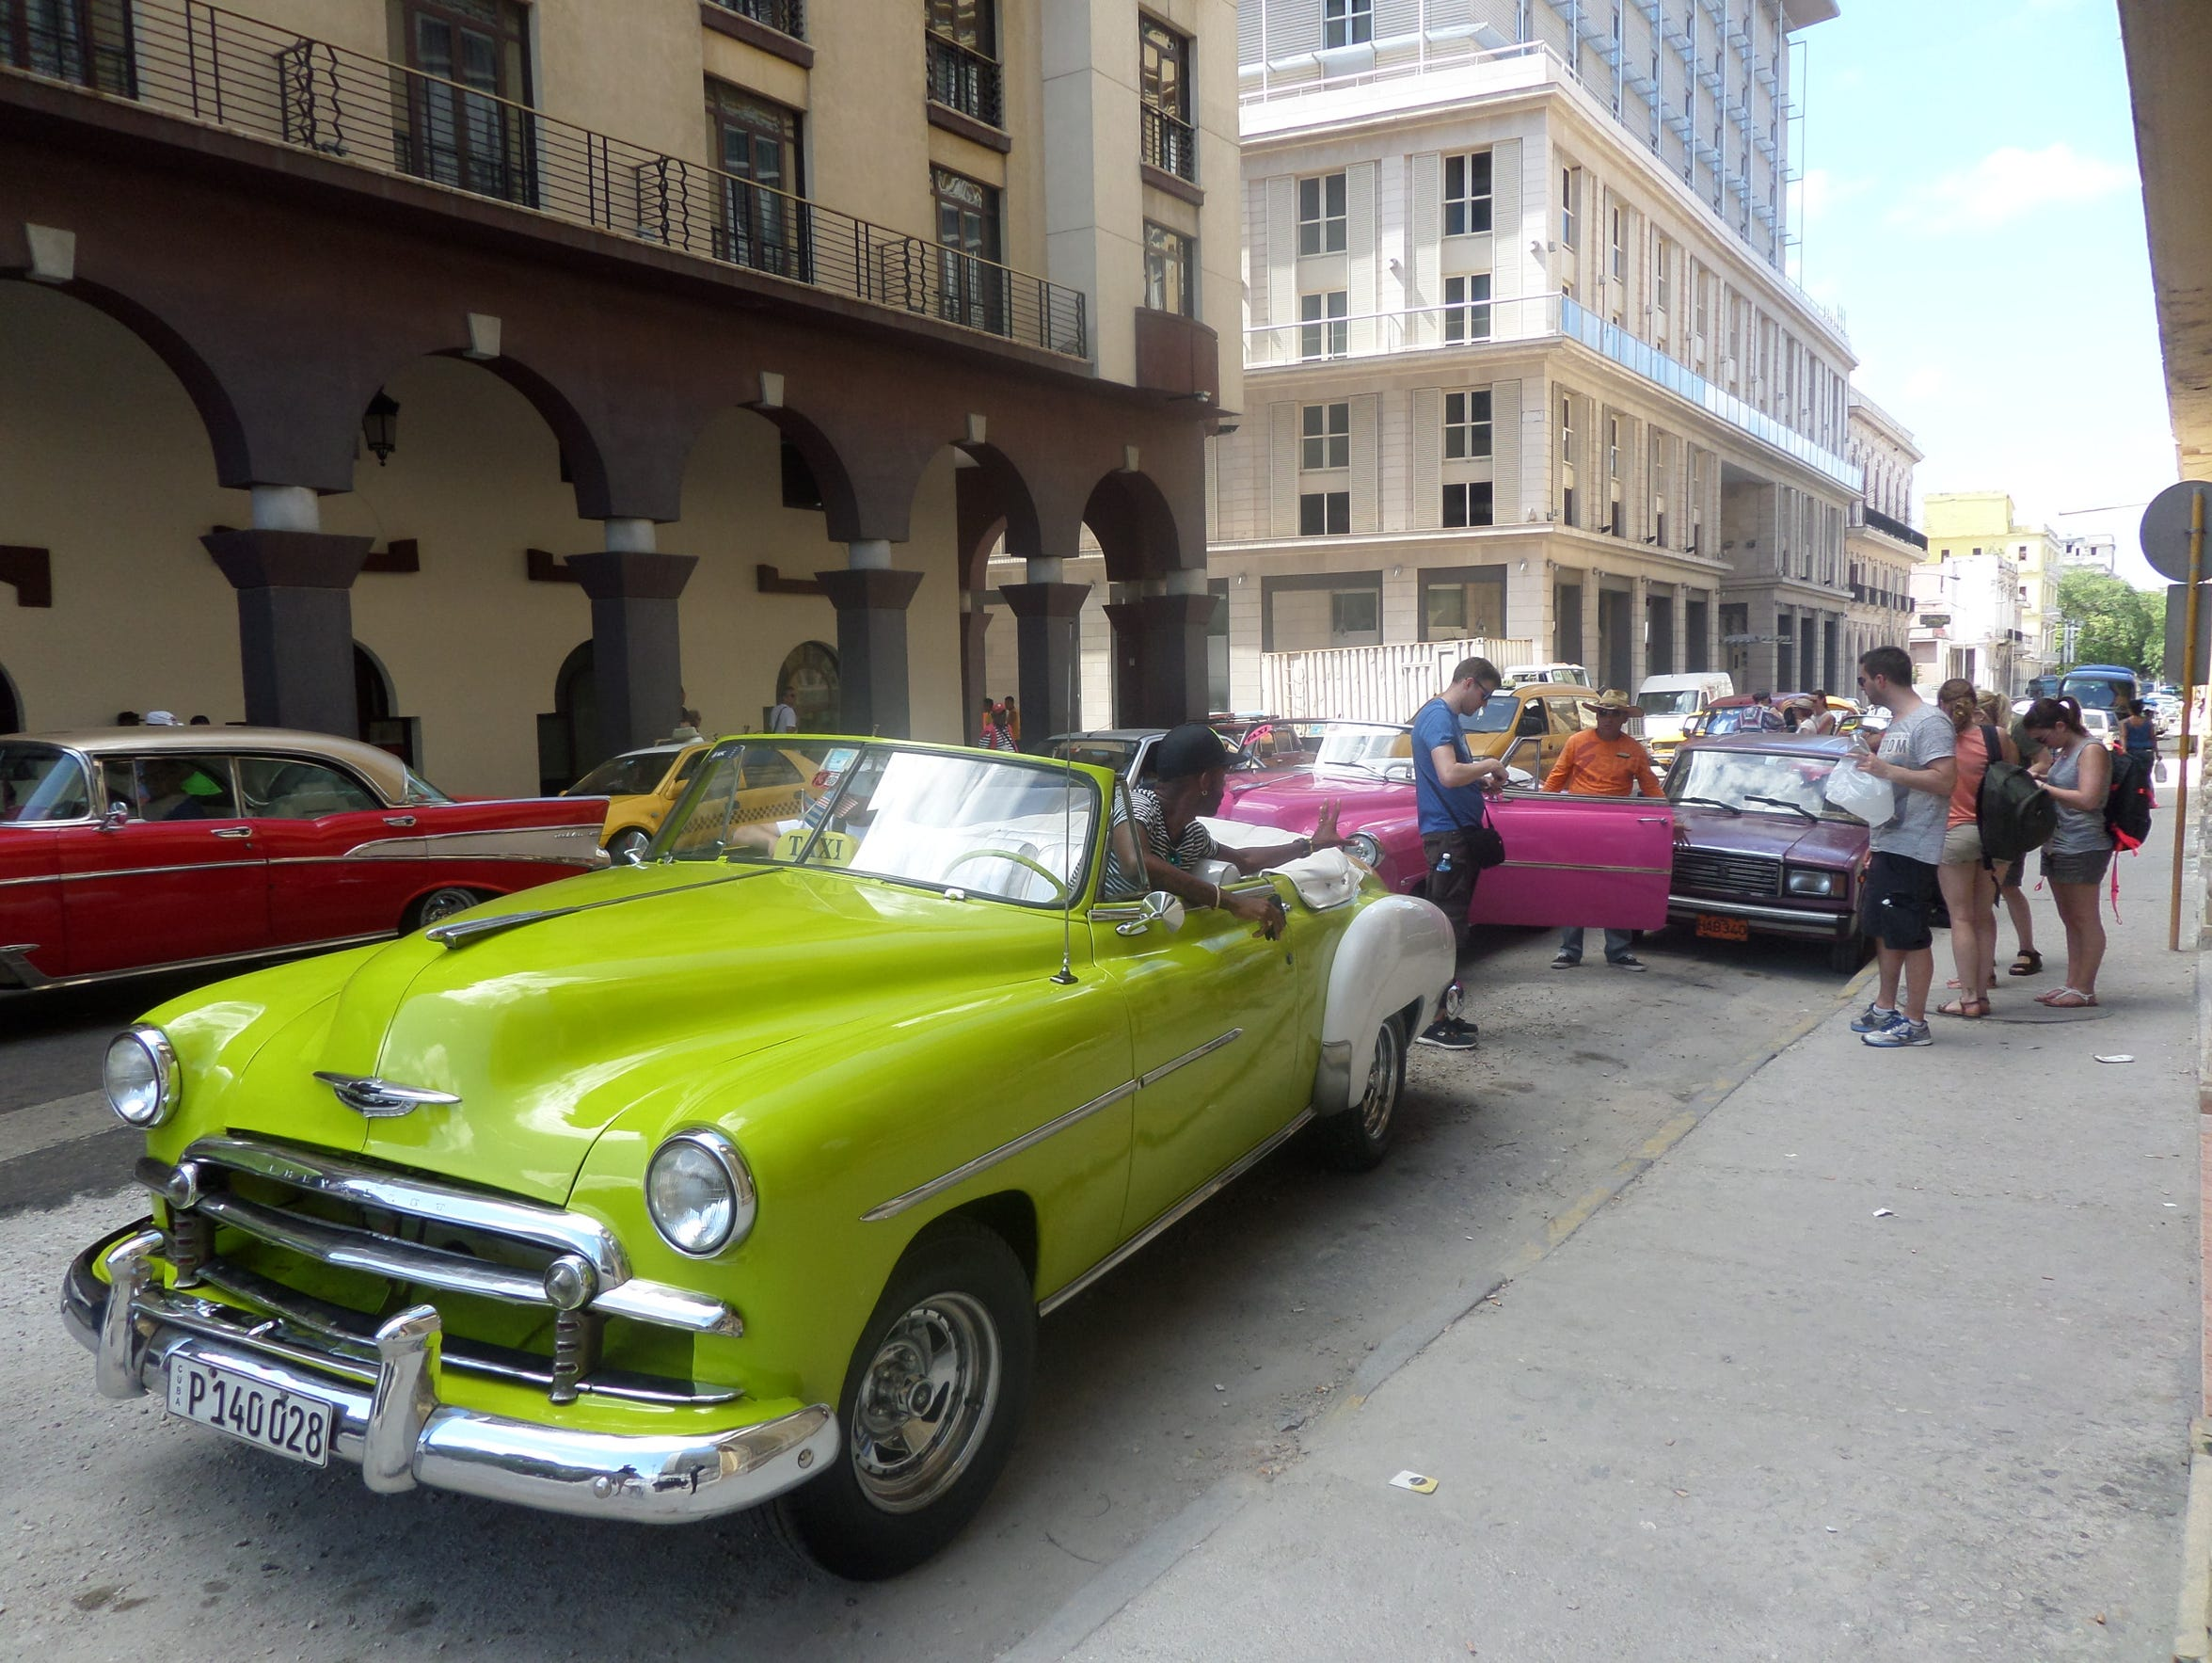 In Havana, students found a thriving cultural scene.